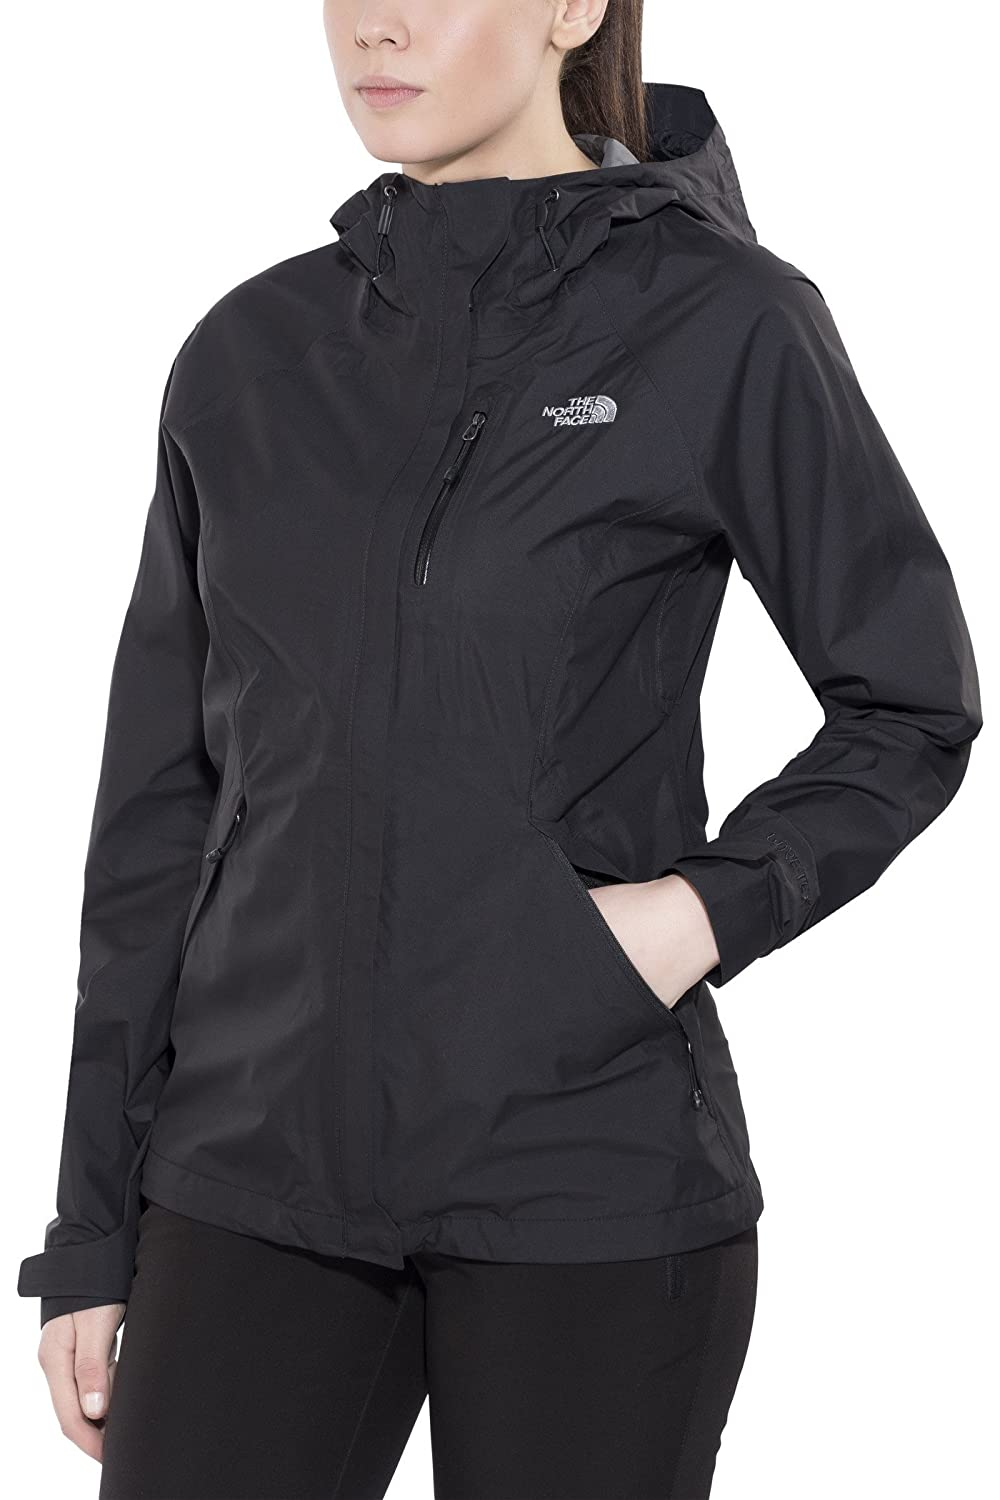 57d85fdbc The North Face Women's Dryzzle Outdoor Jacket